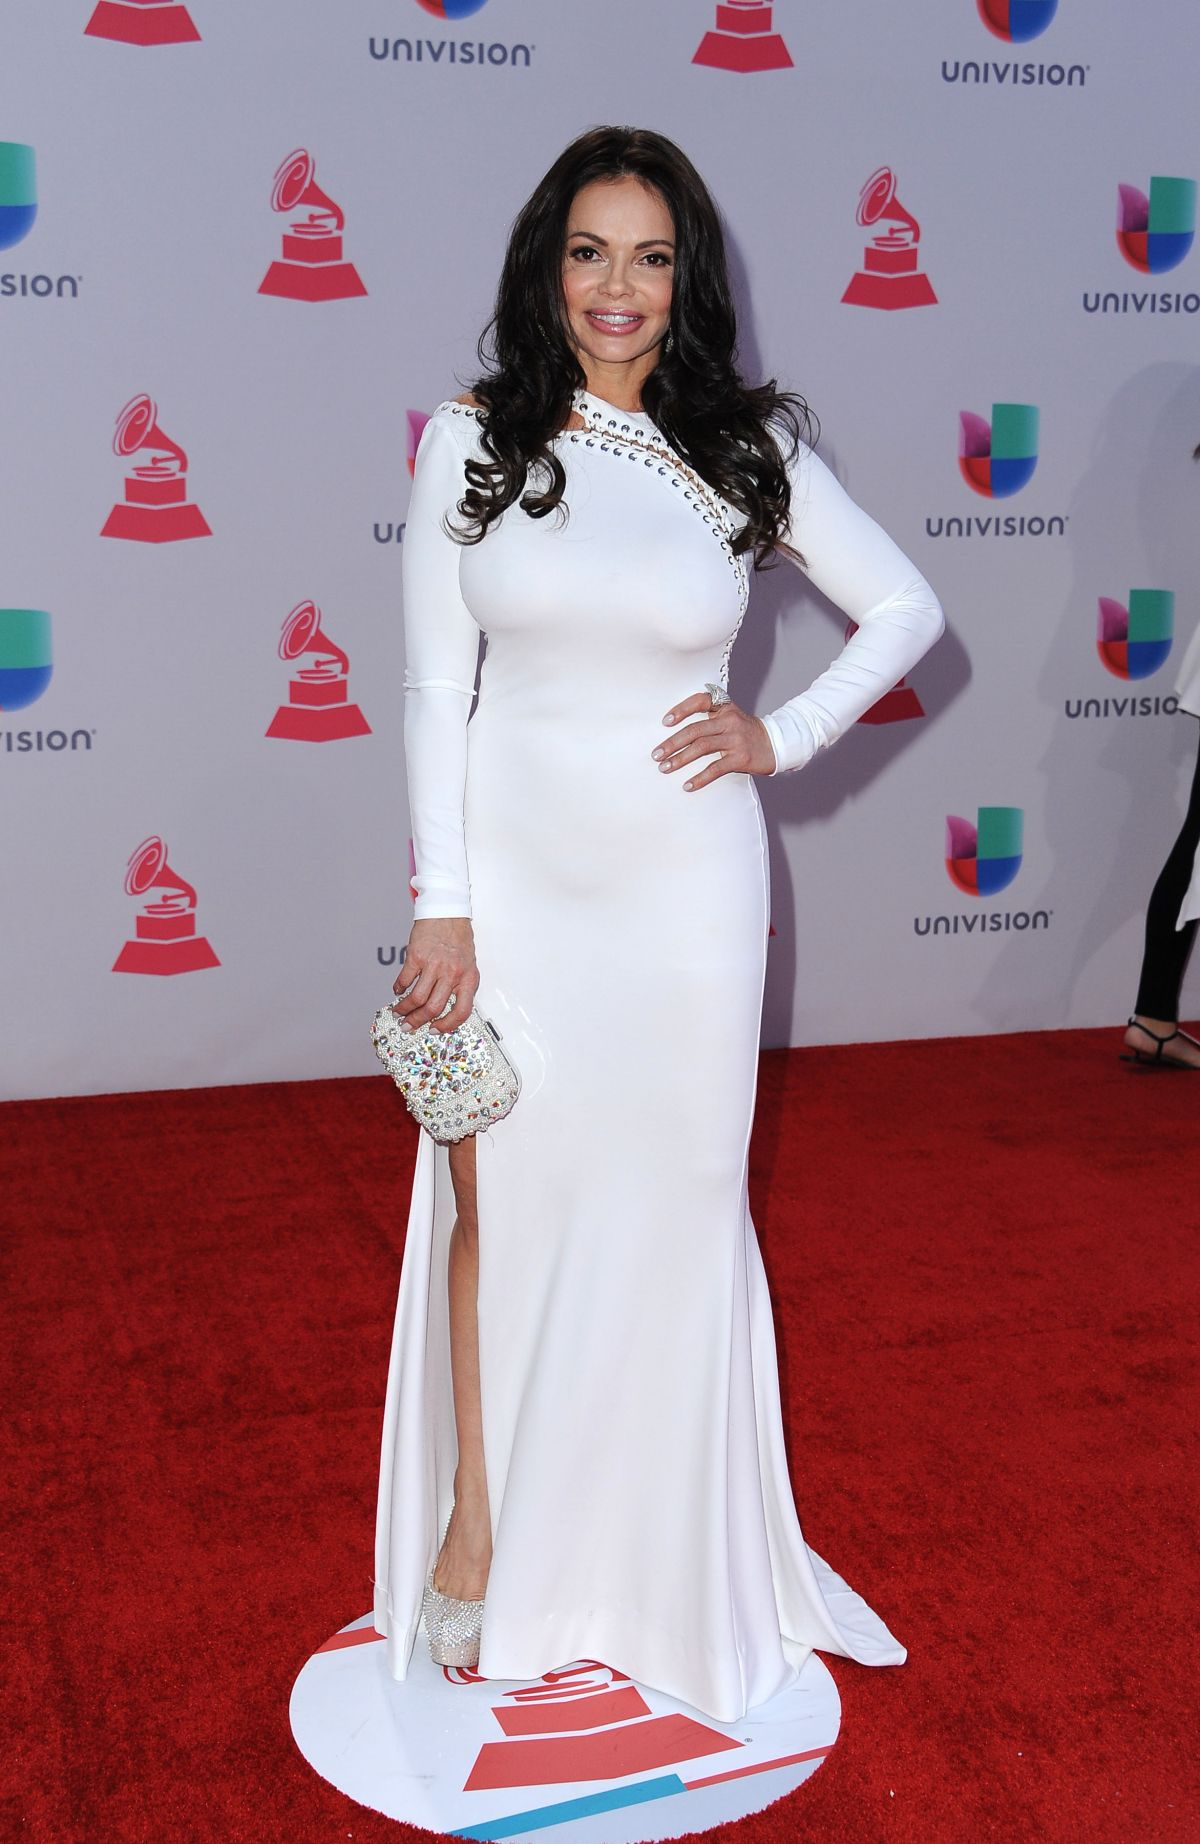 JULIE FERRETTI at 2015 Latin Grammy Awards in Las Vegas 11/18/2015